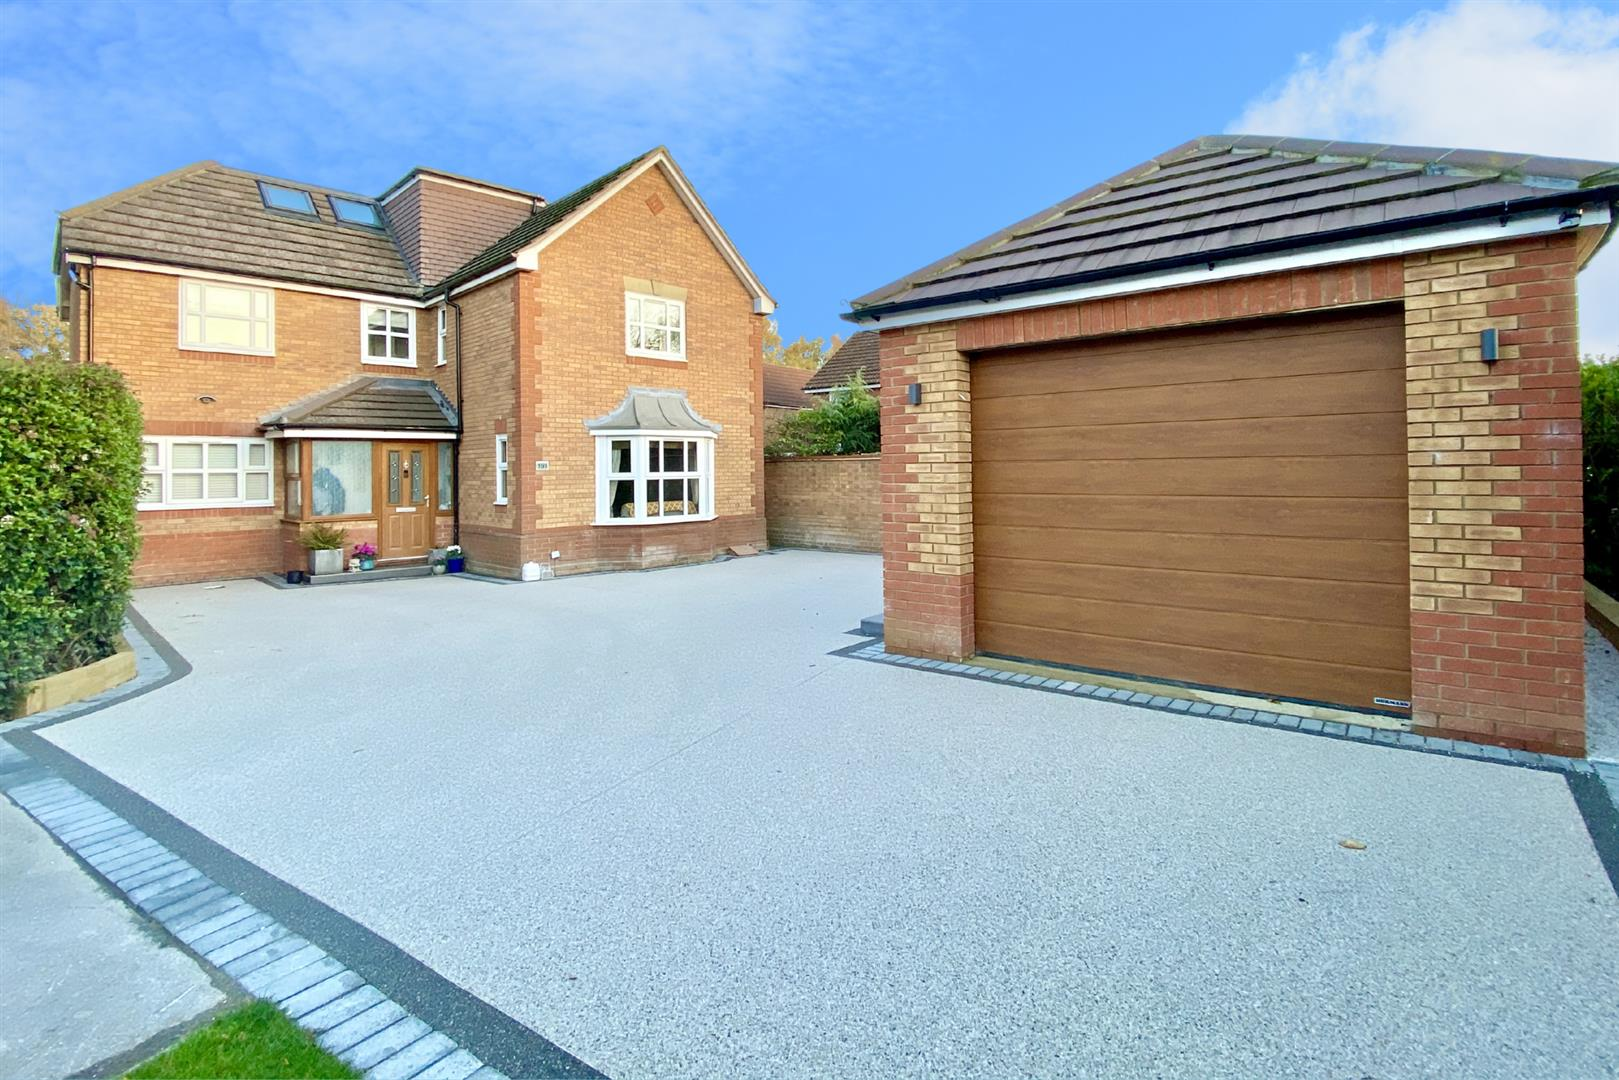 5 bed detached for sale in Woodley 1